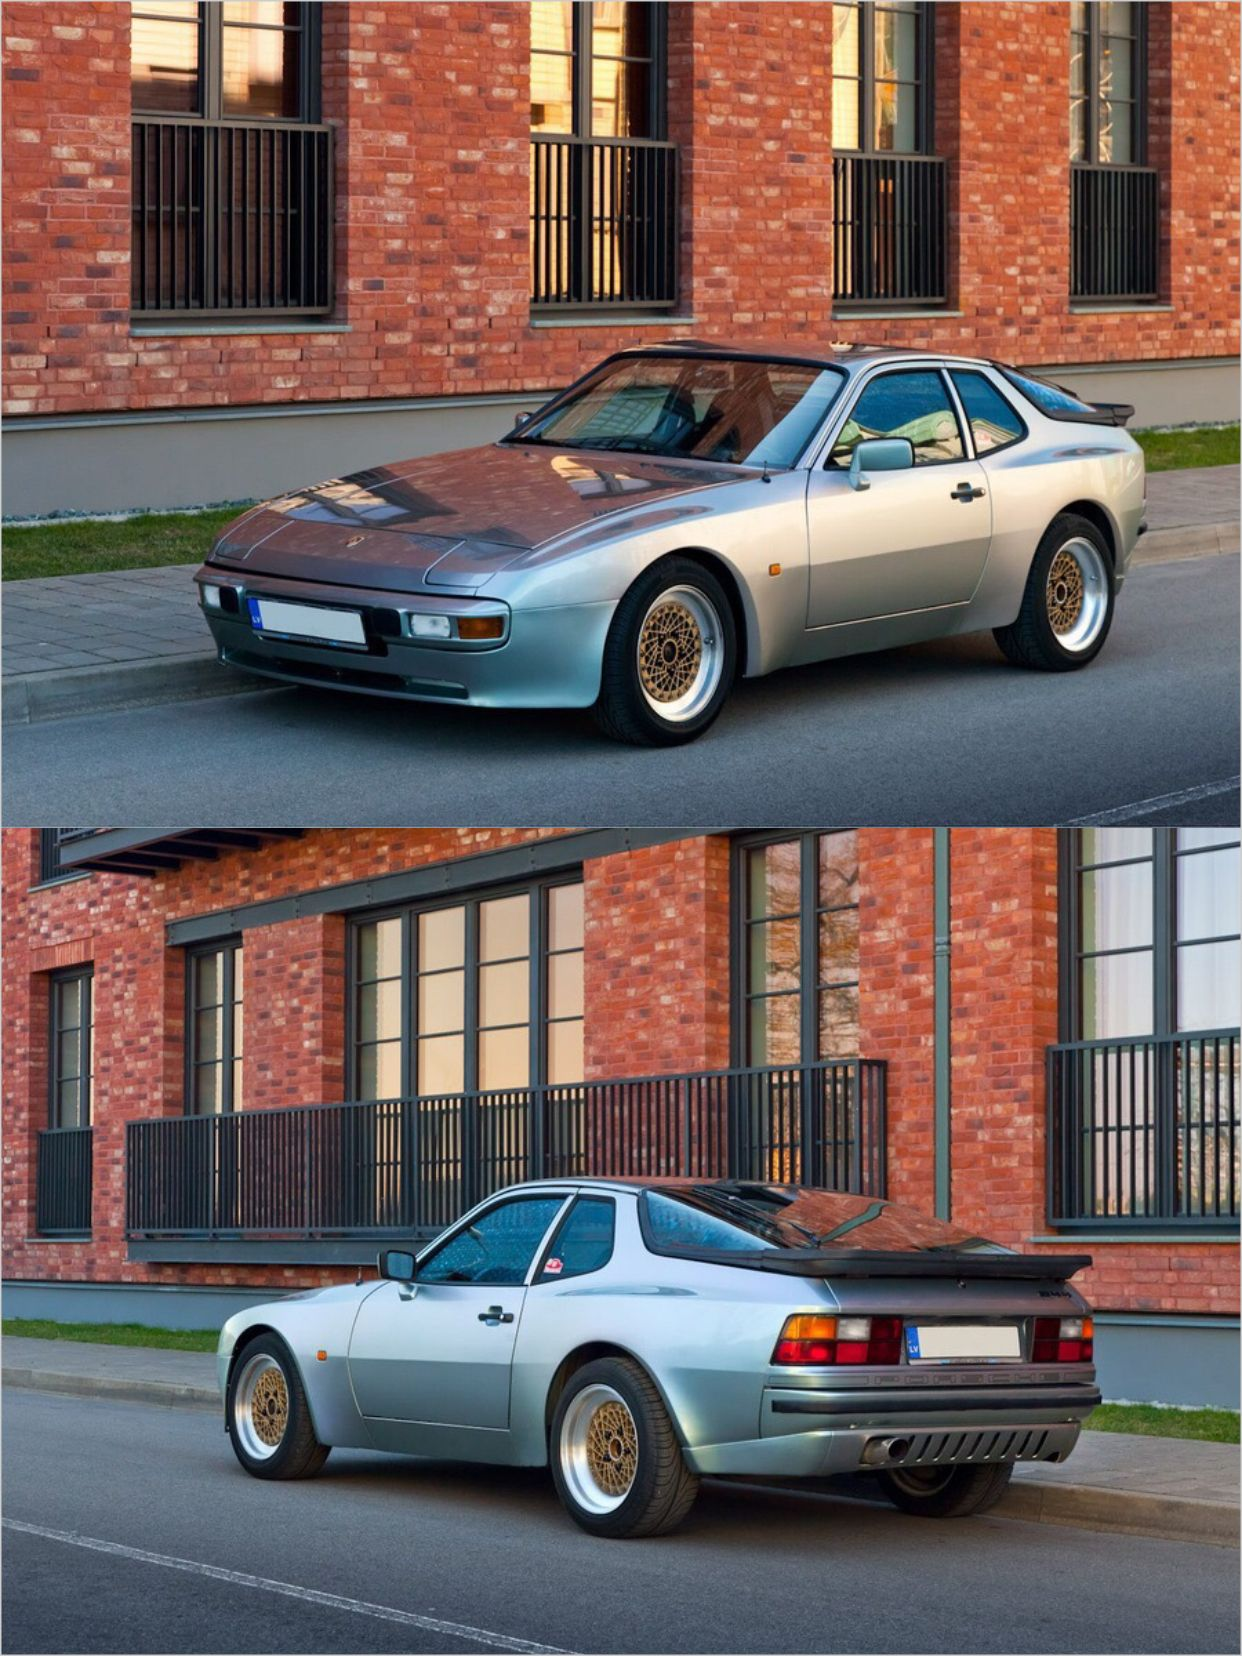 1982 Porsche 944 With Aftermarket Bbs Wheels And Euro Rear Valance Porsche 944 Porsche Vintage Porsche